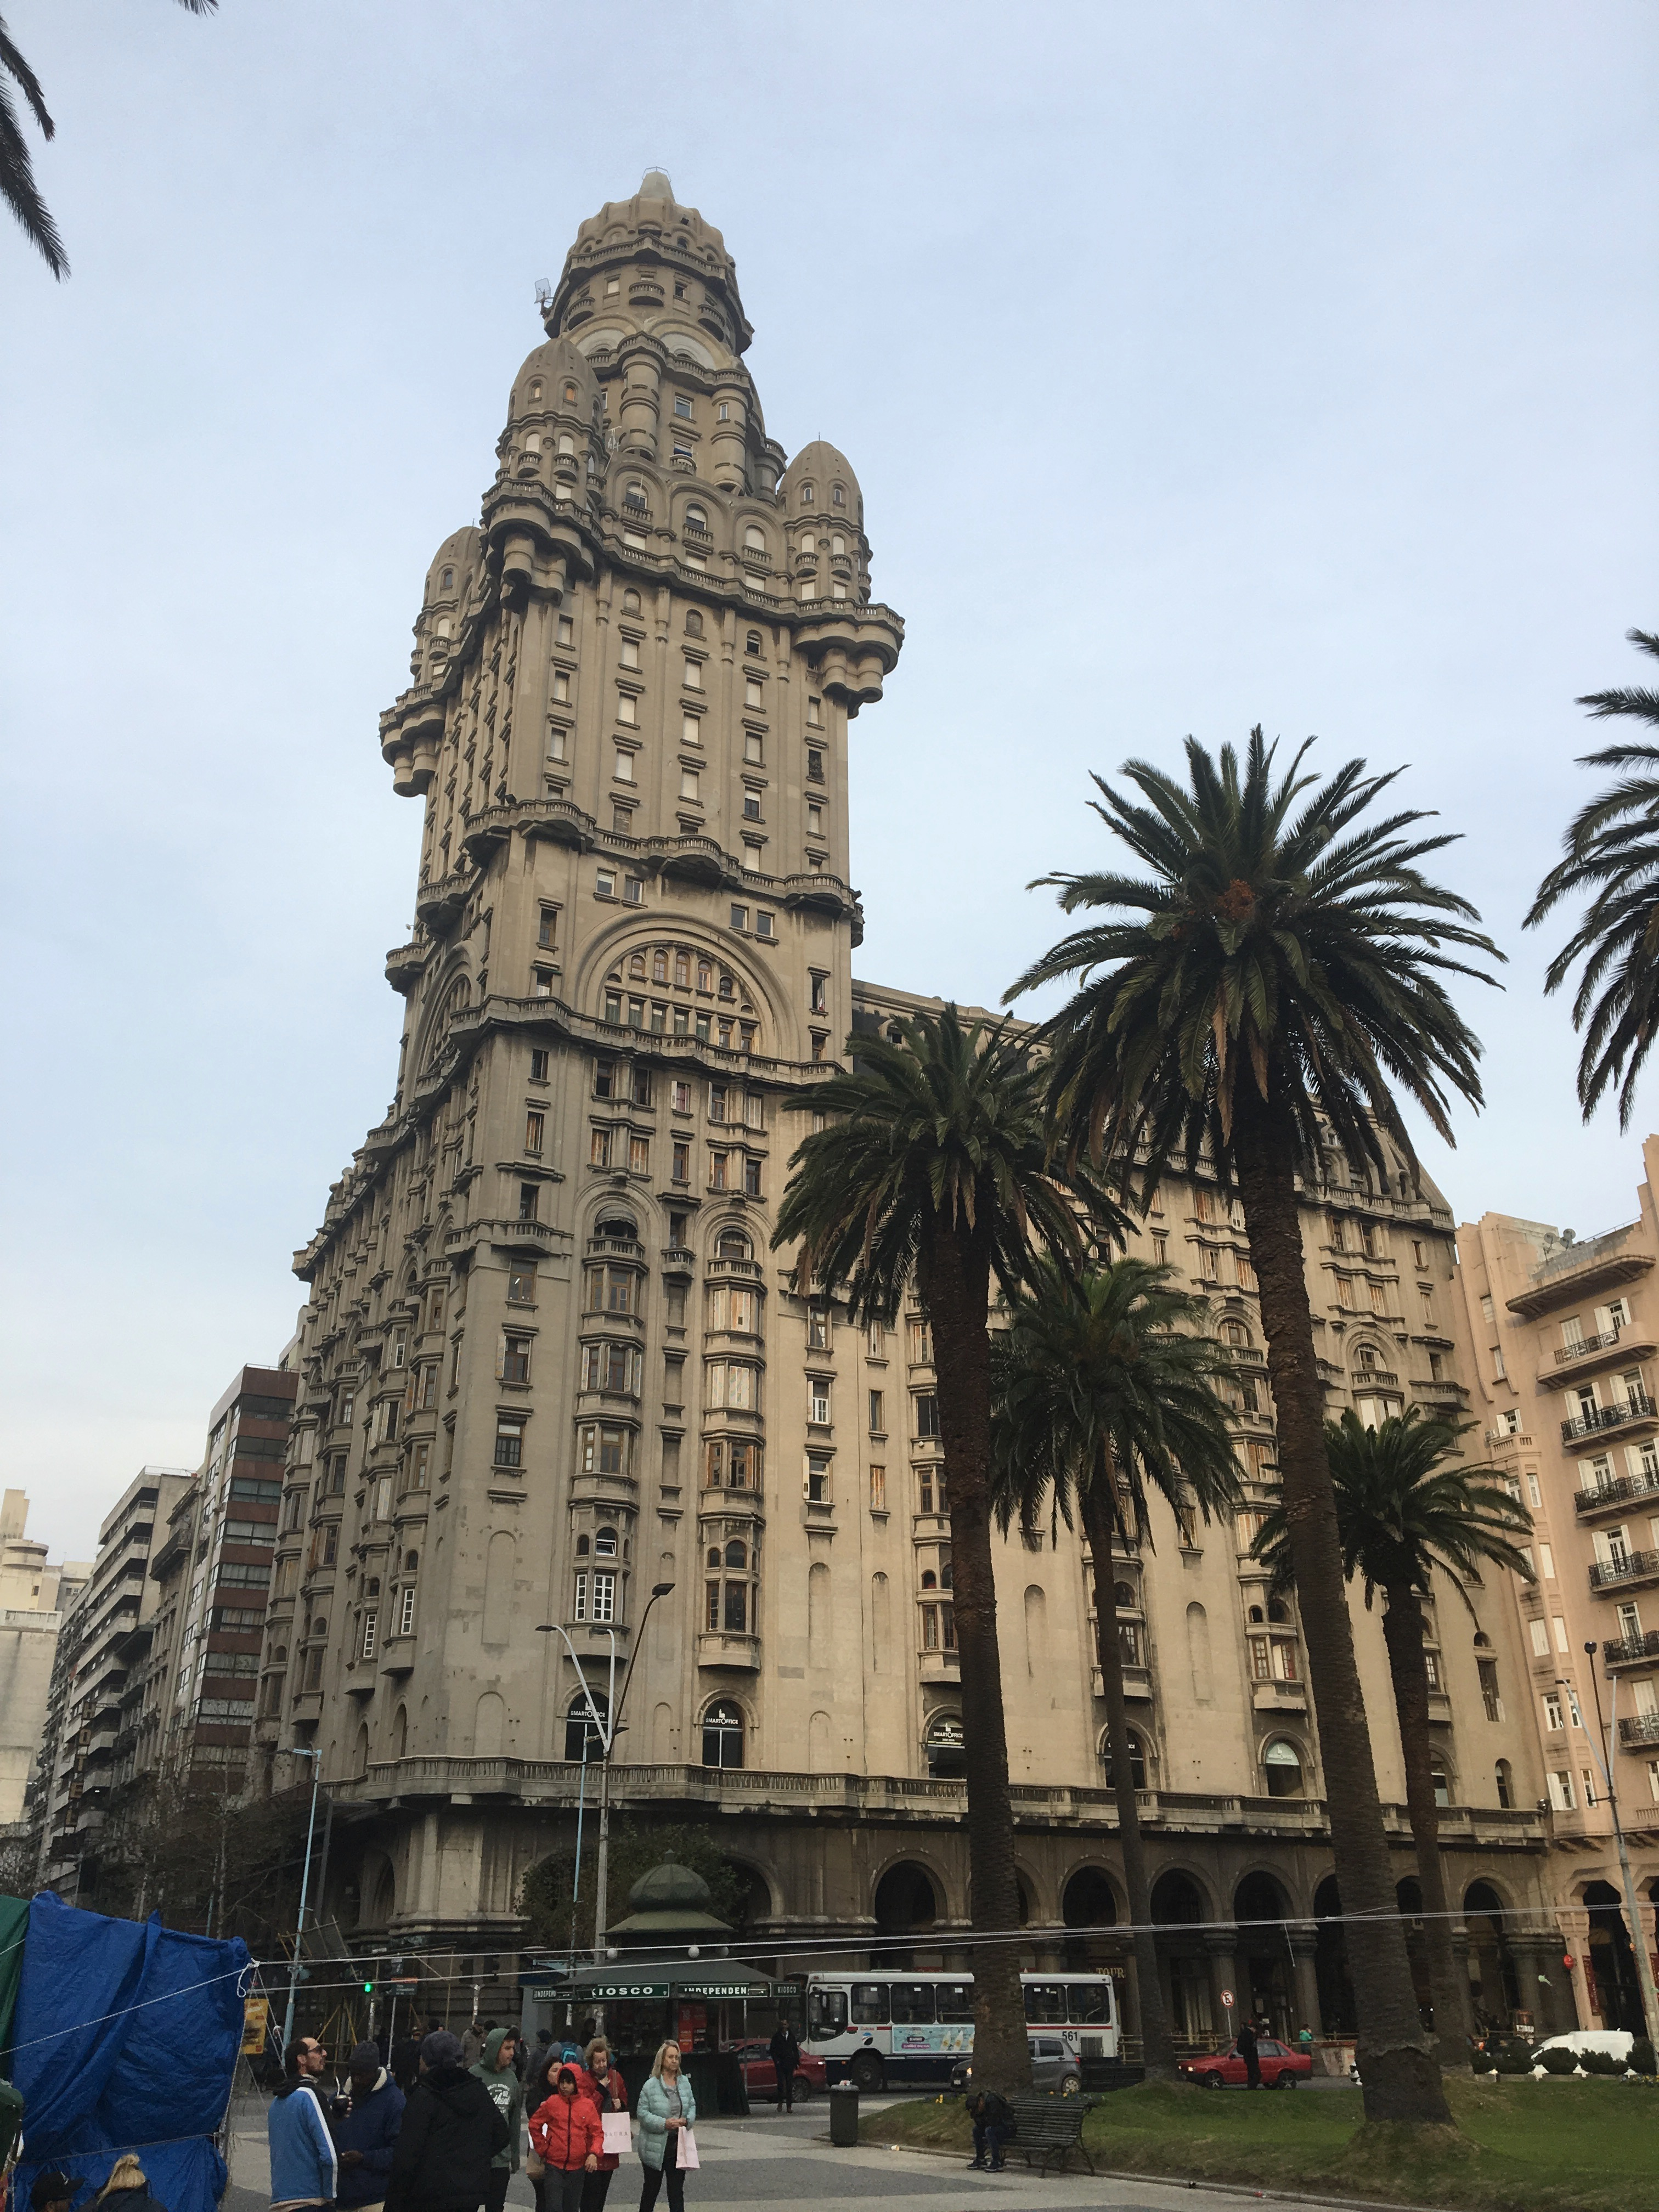 Still the most impressive building on Montevideo's main plaza.